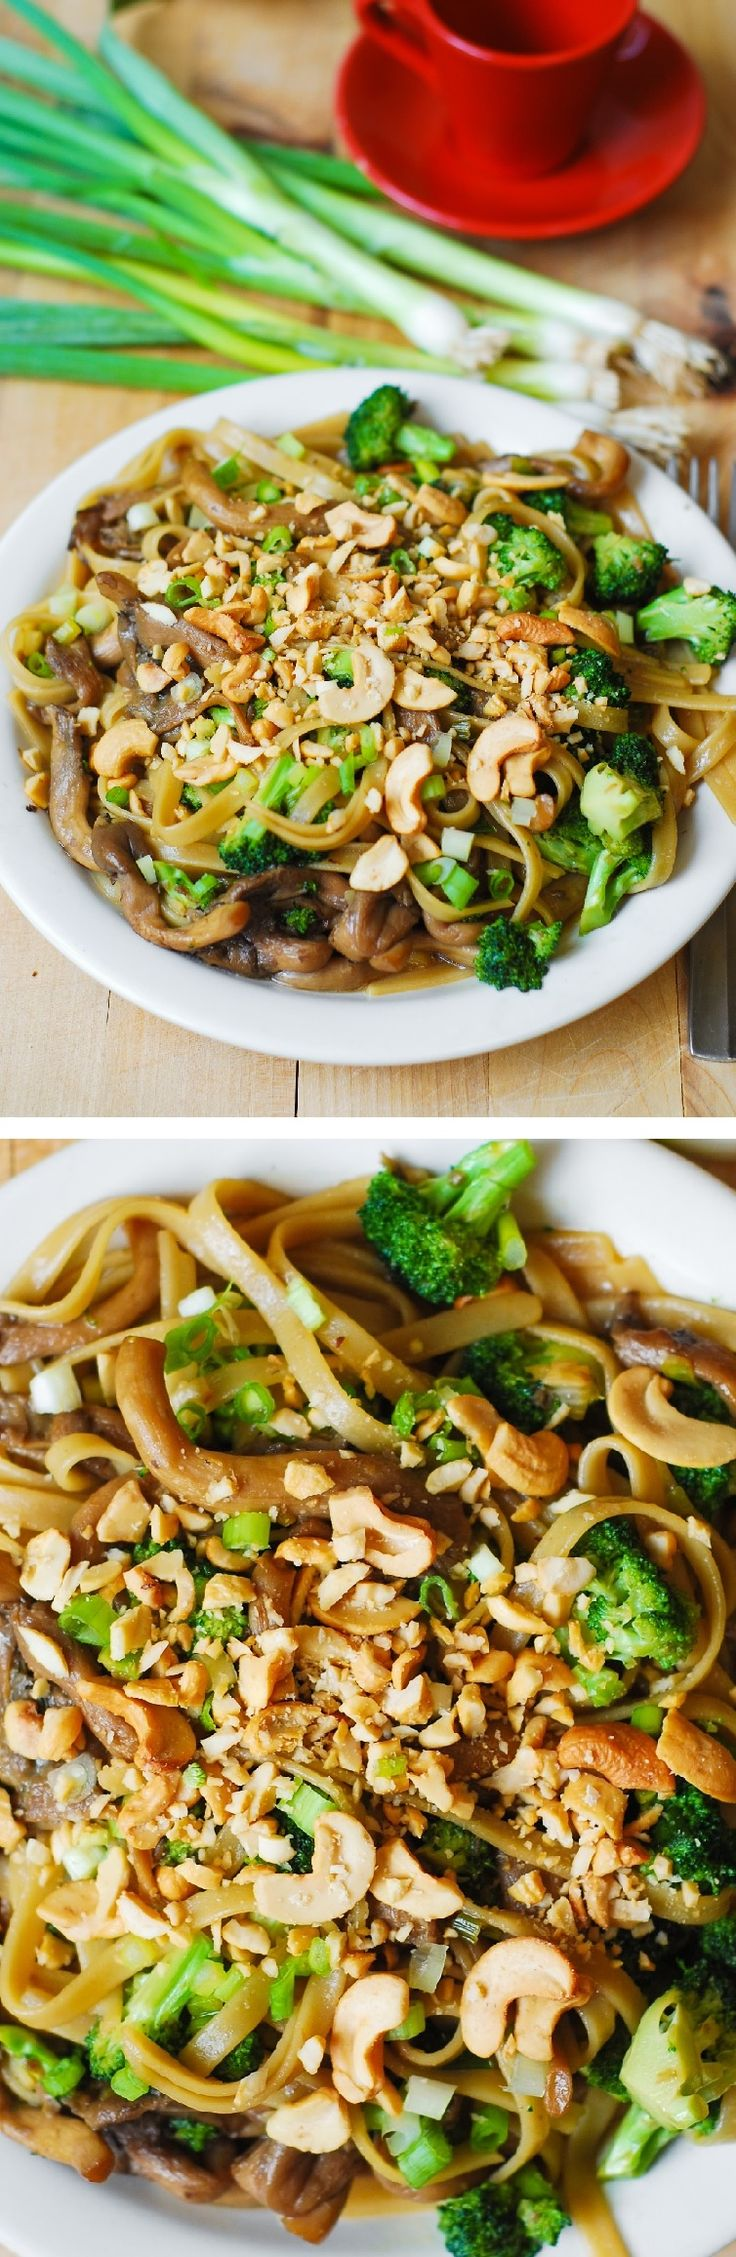 Asian-flavored pasta with broccoli and oyster mushrooms. Vegetarian, gluten free recipe using Fettuccine Style Brown Rice Pasta and wheat-free tamari sauce.